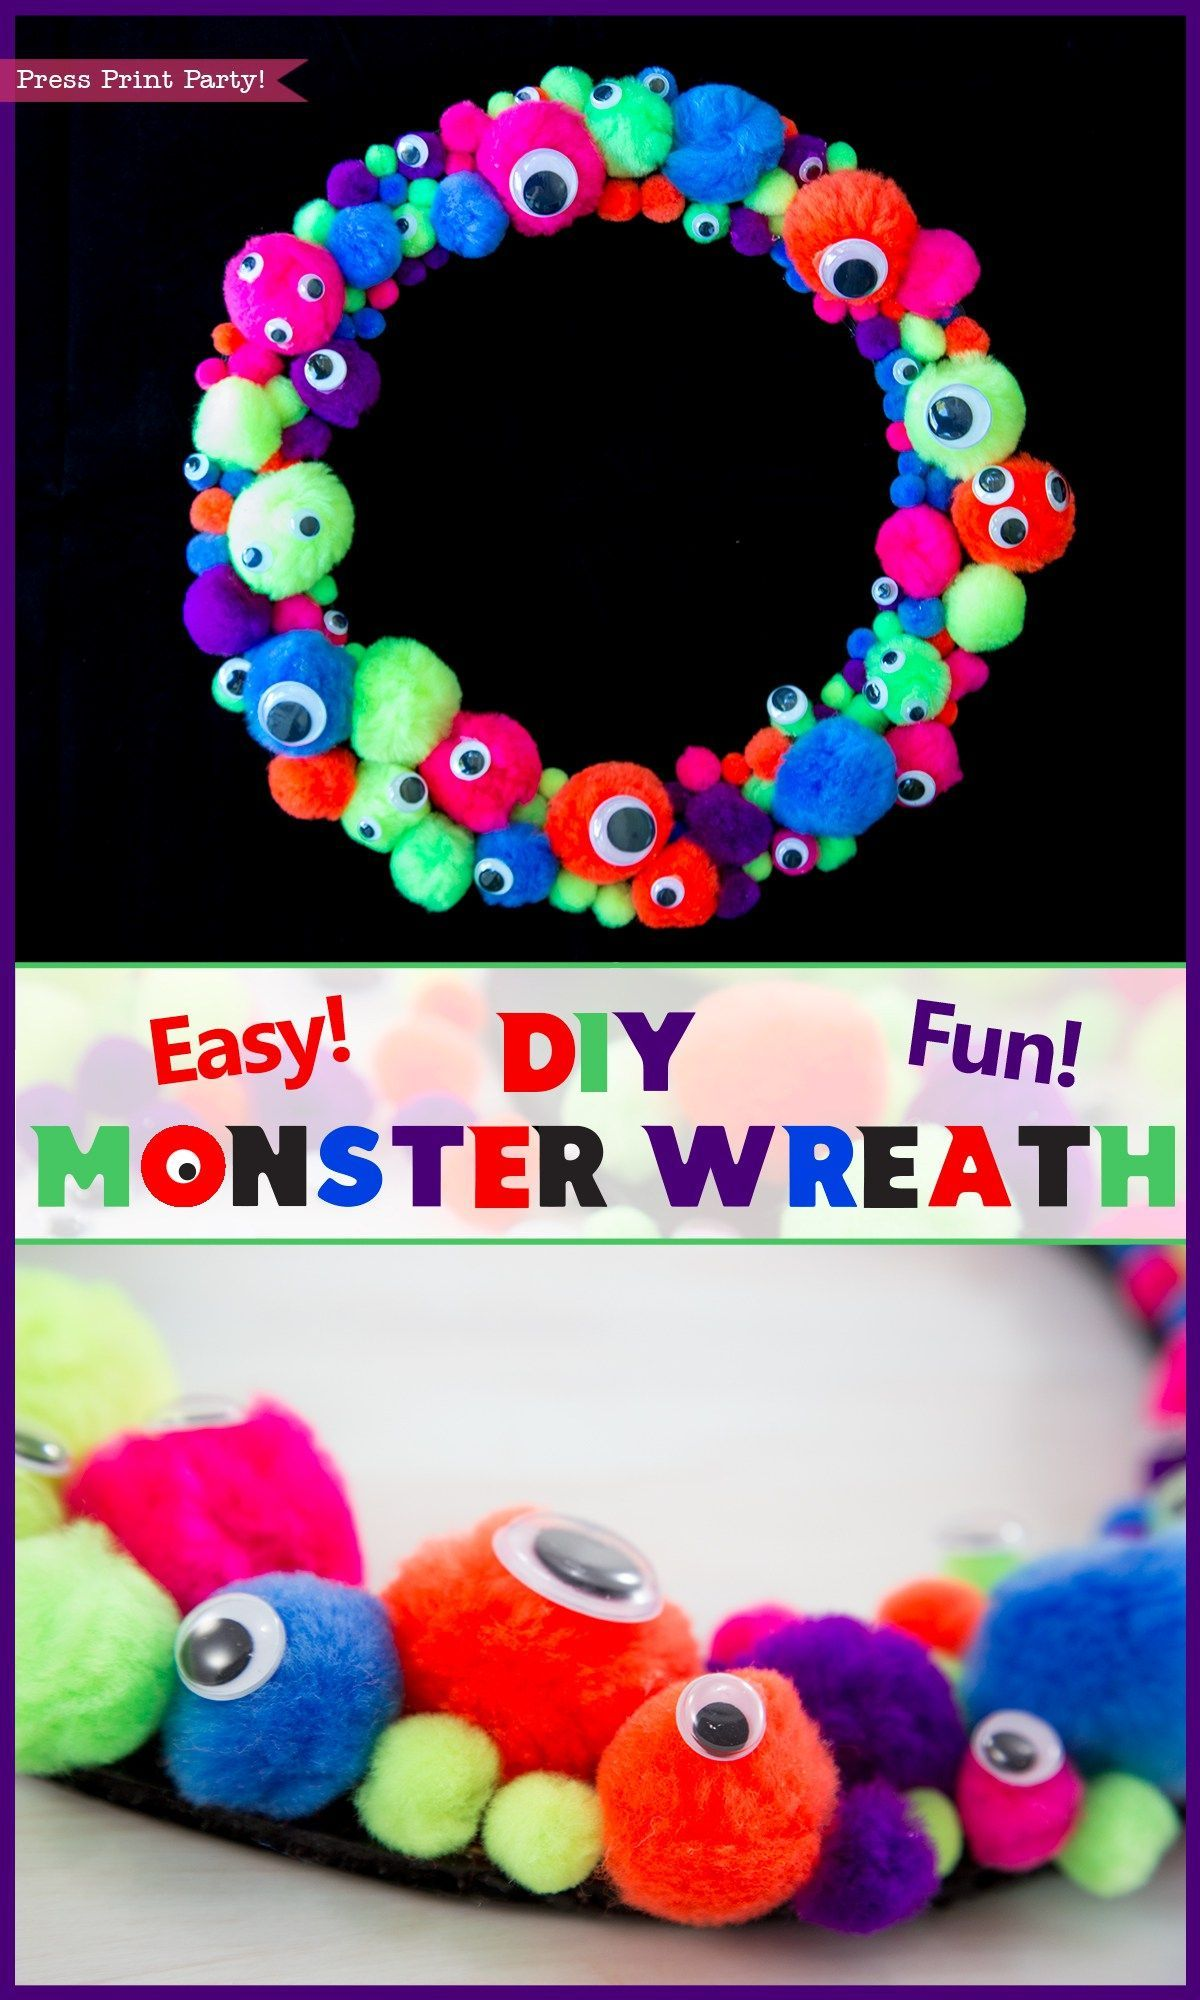 Easy and Fun Monster Wreath DIY by Press Print Party! Craft - cute homemade halloween decorations